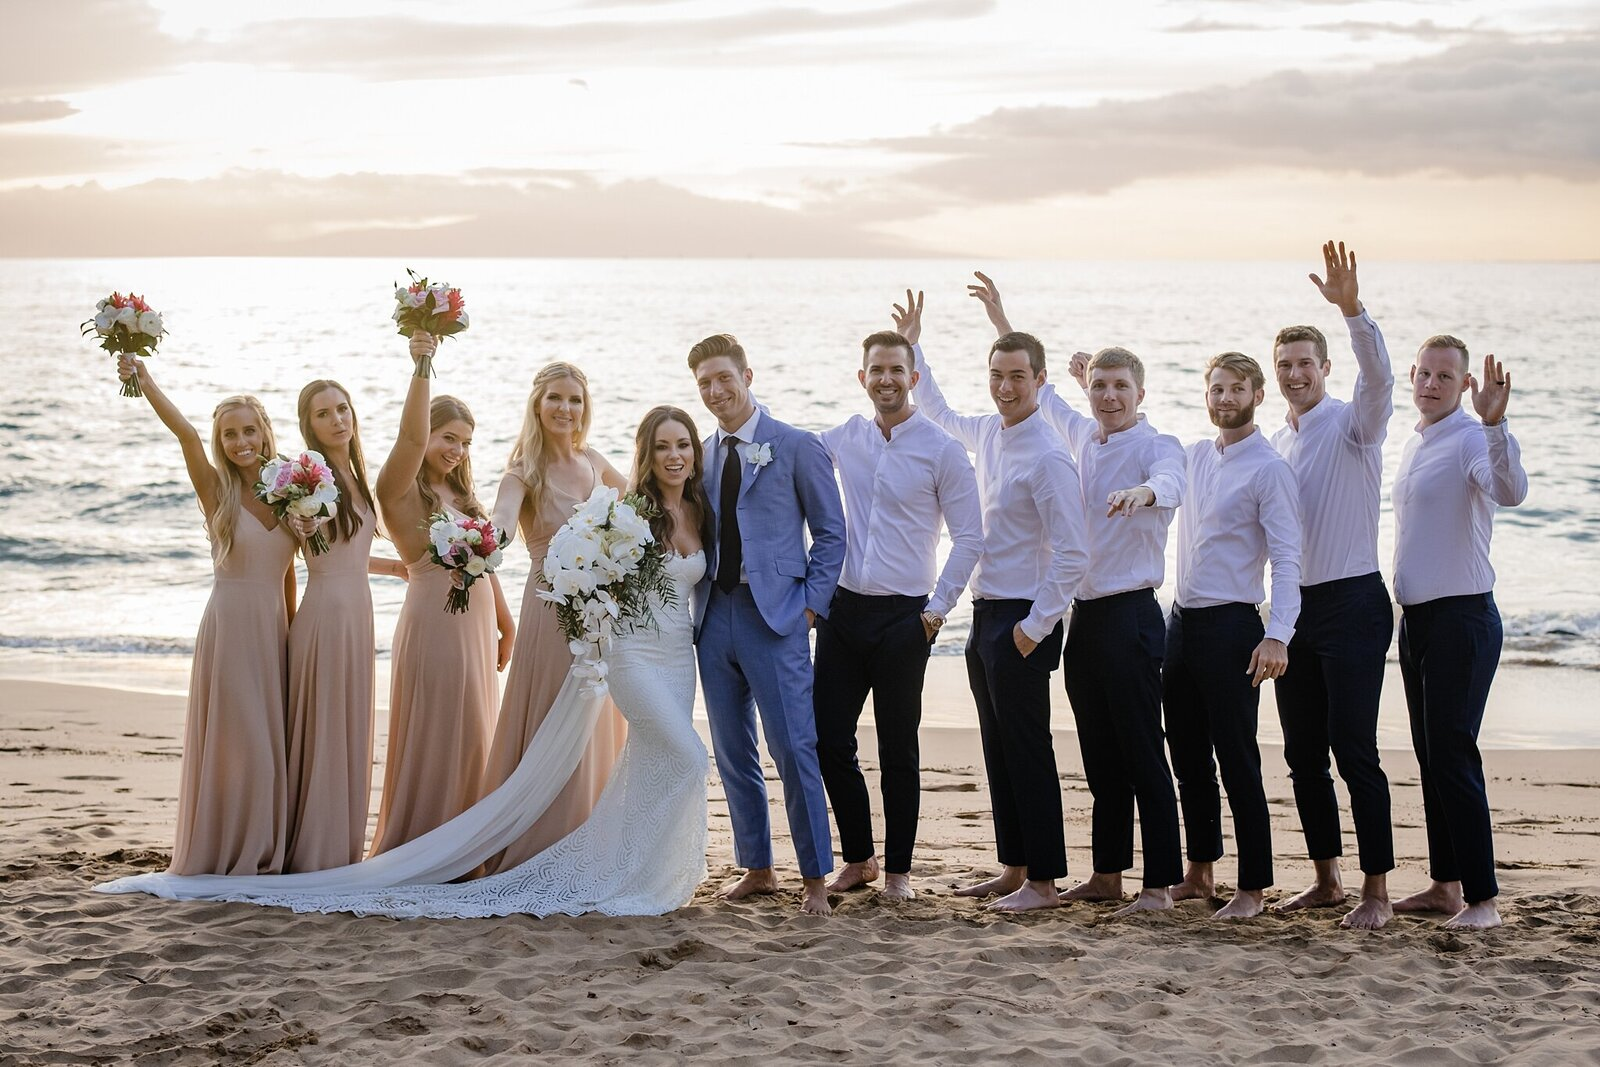 fun wedding party in hawaii